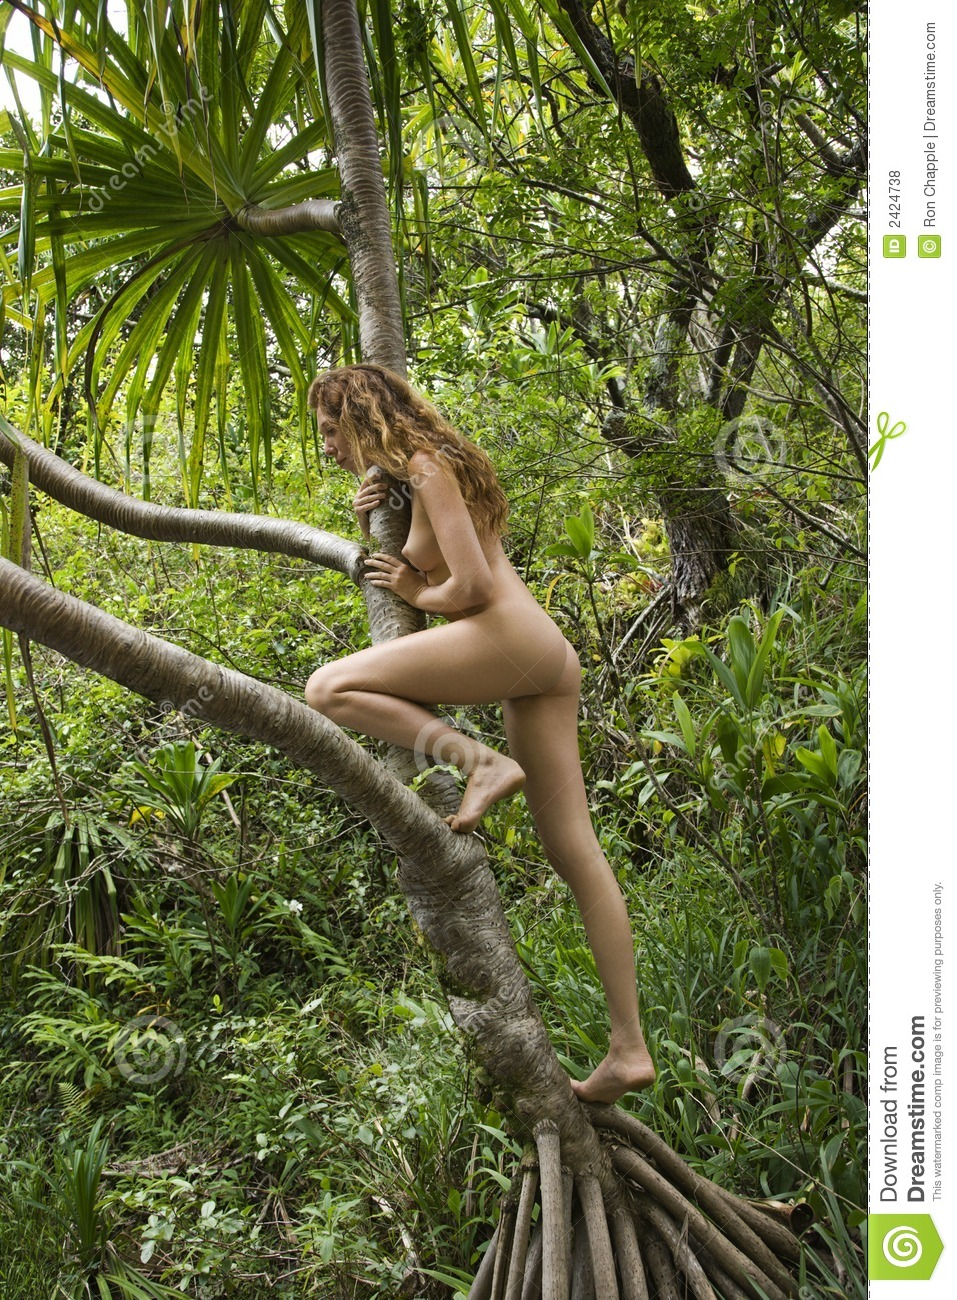 Man and woman nude in nature